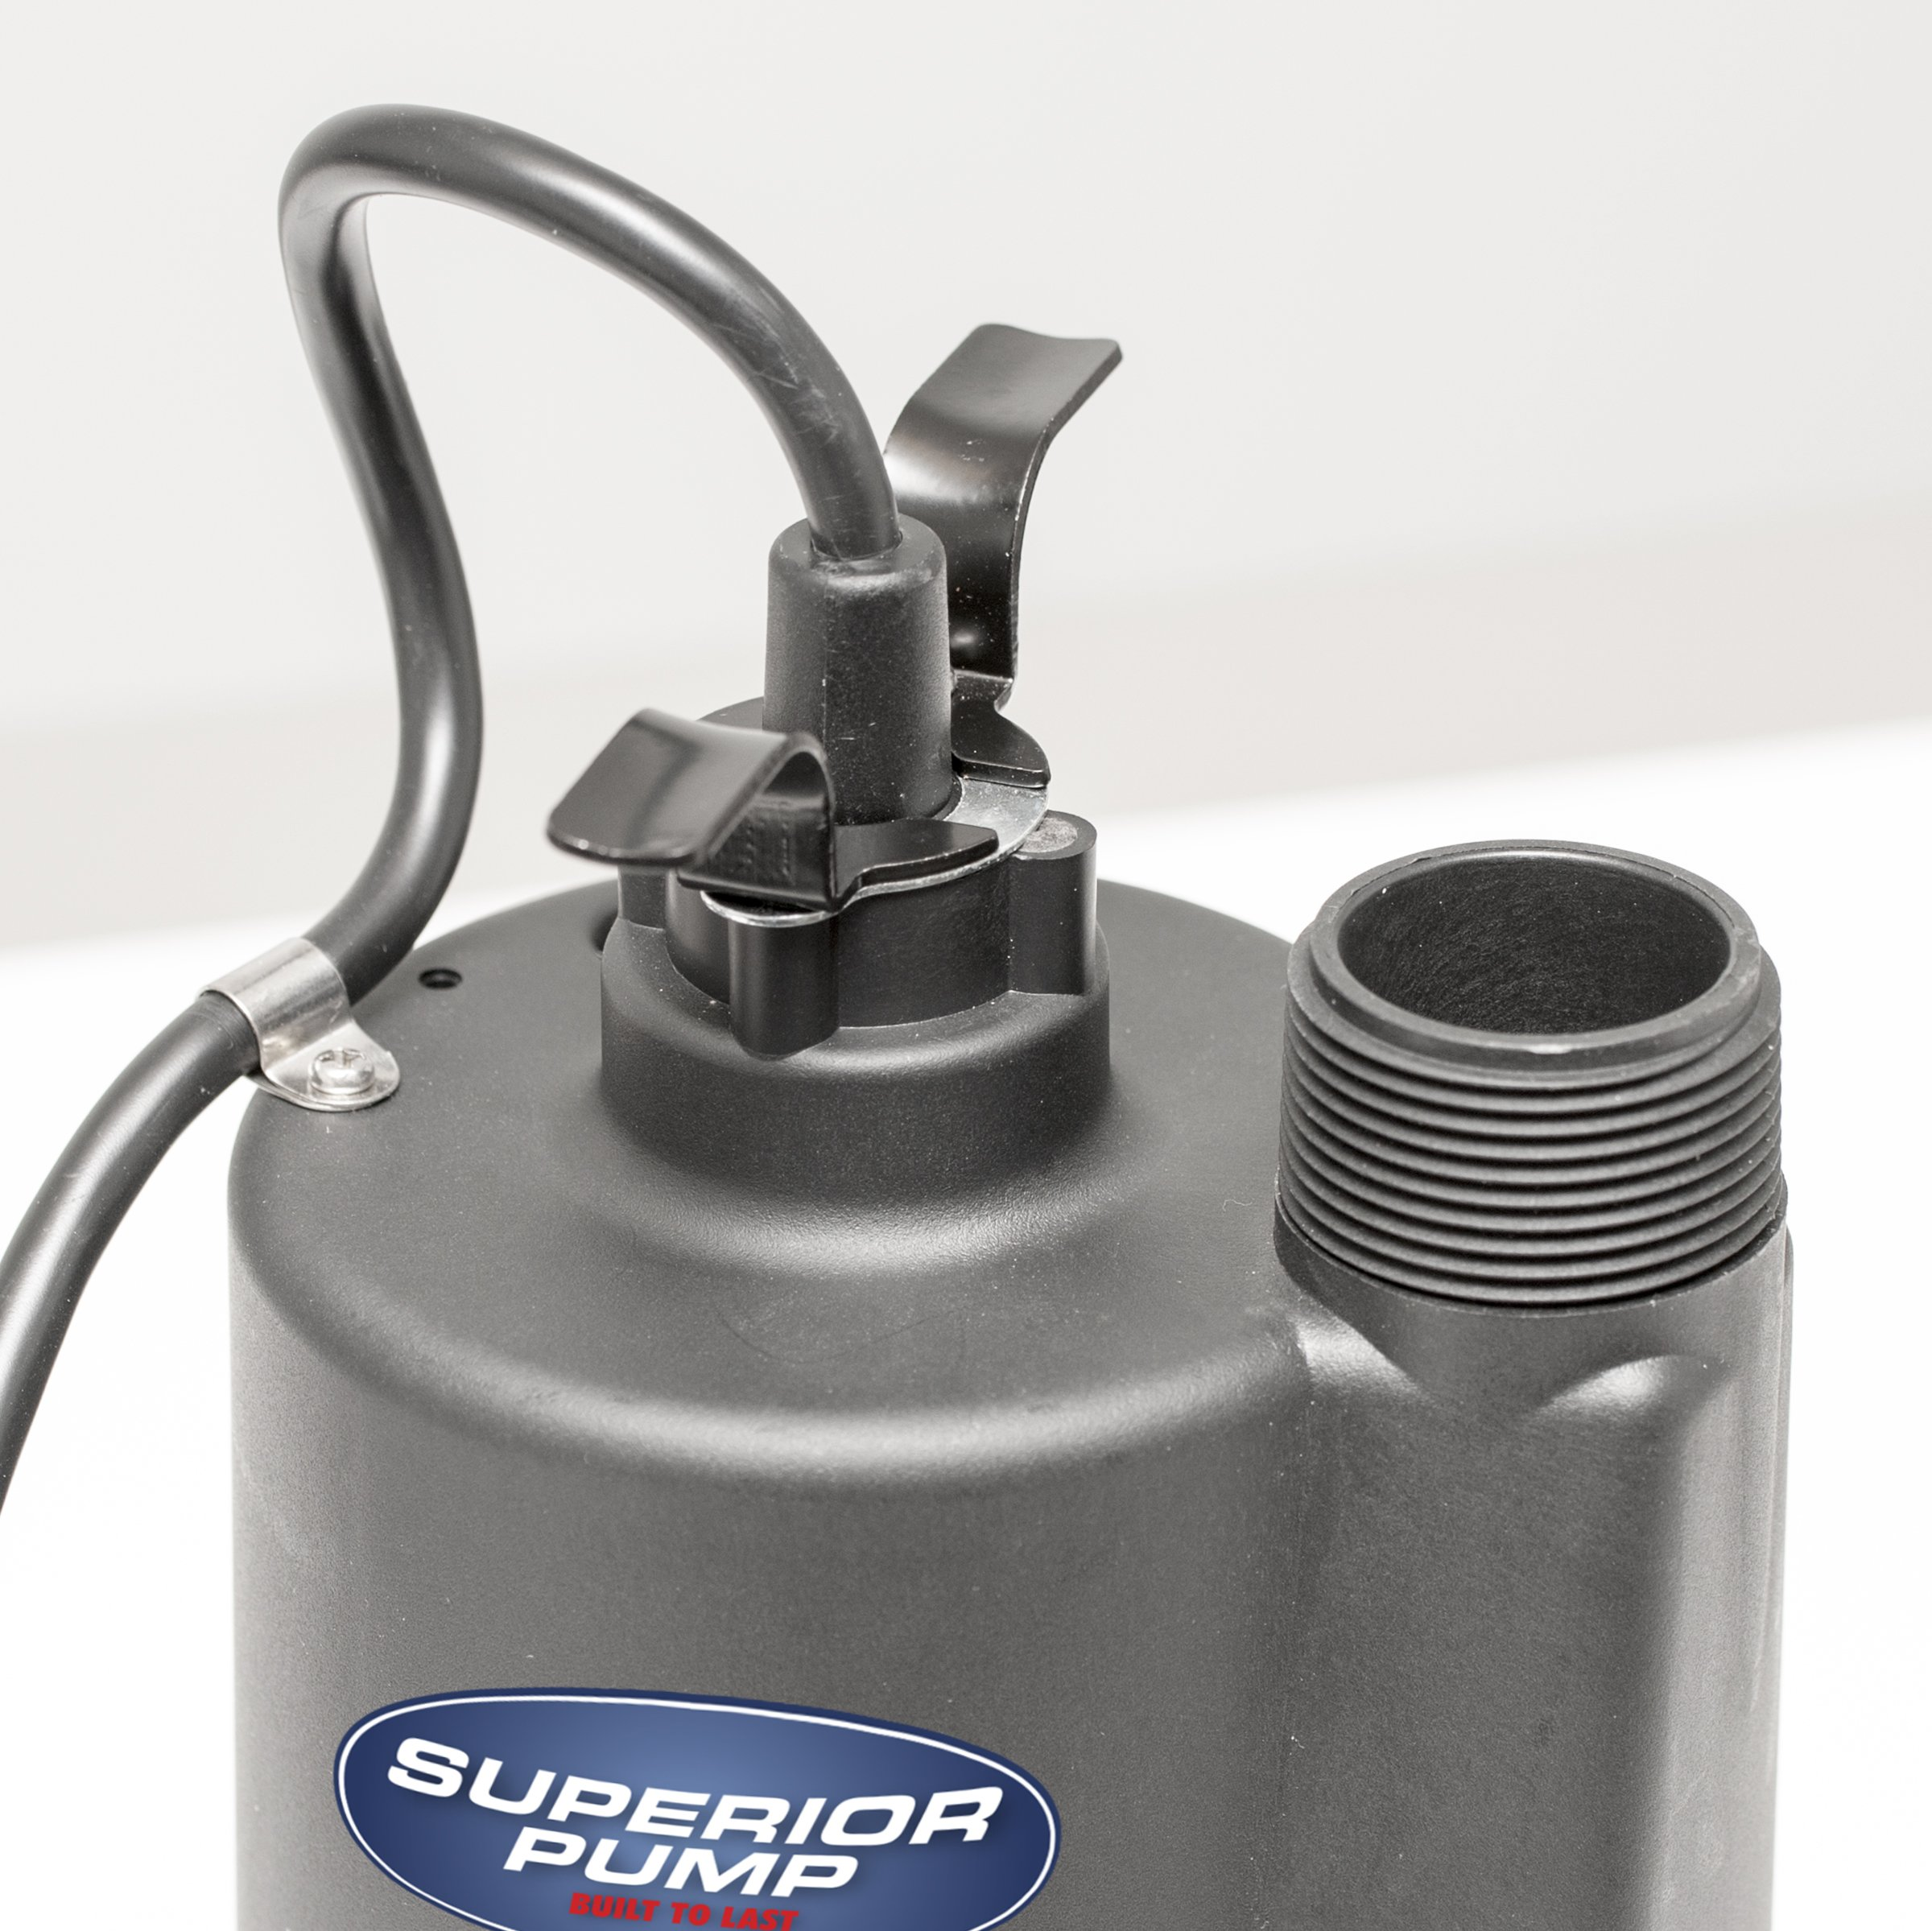 Superior Pump 91025 1/5 HP Thermoplastic Submersible Utility Pump with 10-Foot Cord by Superior Pump (Image #2)